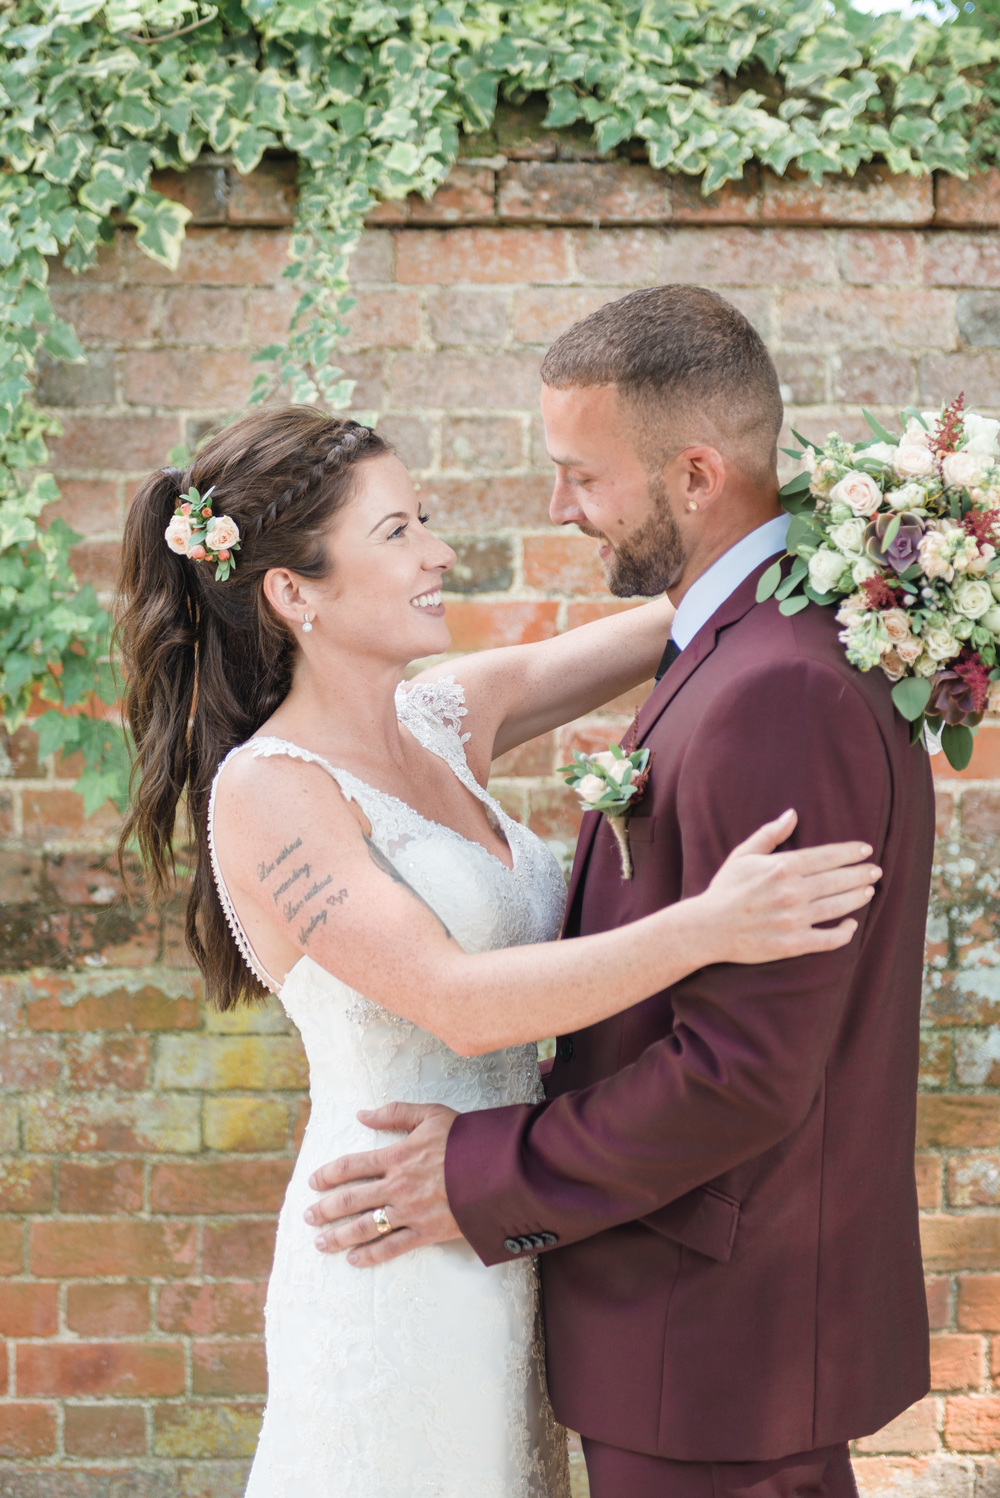 hannah-mcclune-photography-mill-house-hotel-swallowfield-rustic-wedding-burgundy-and-peach-wedding-51